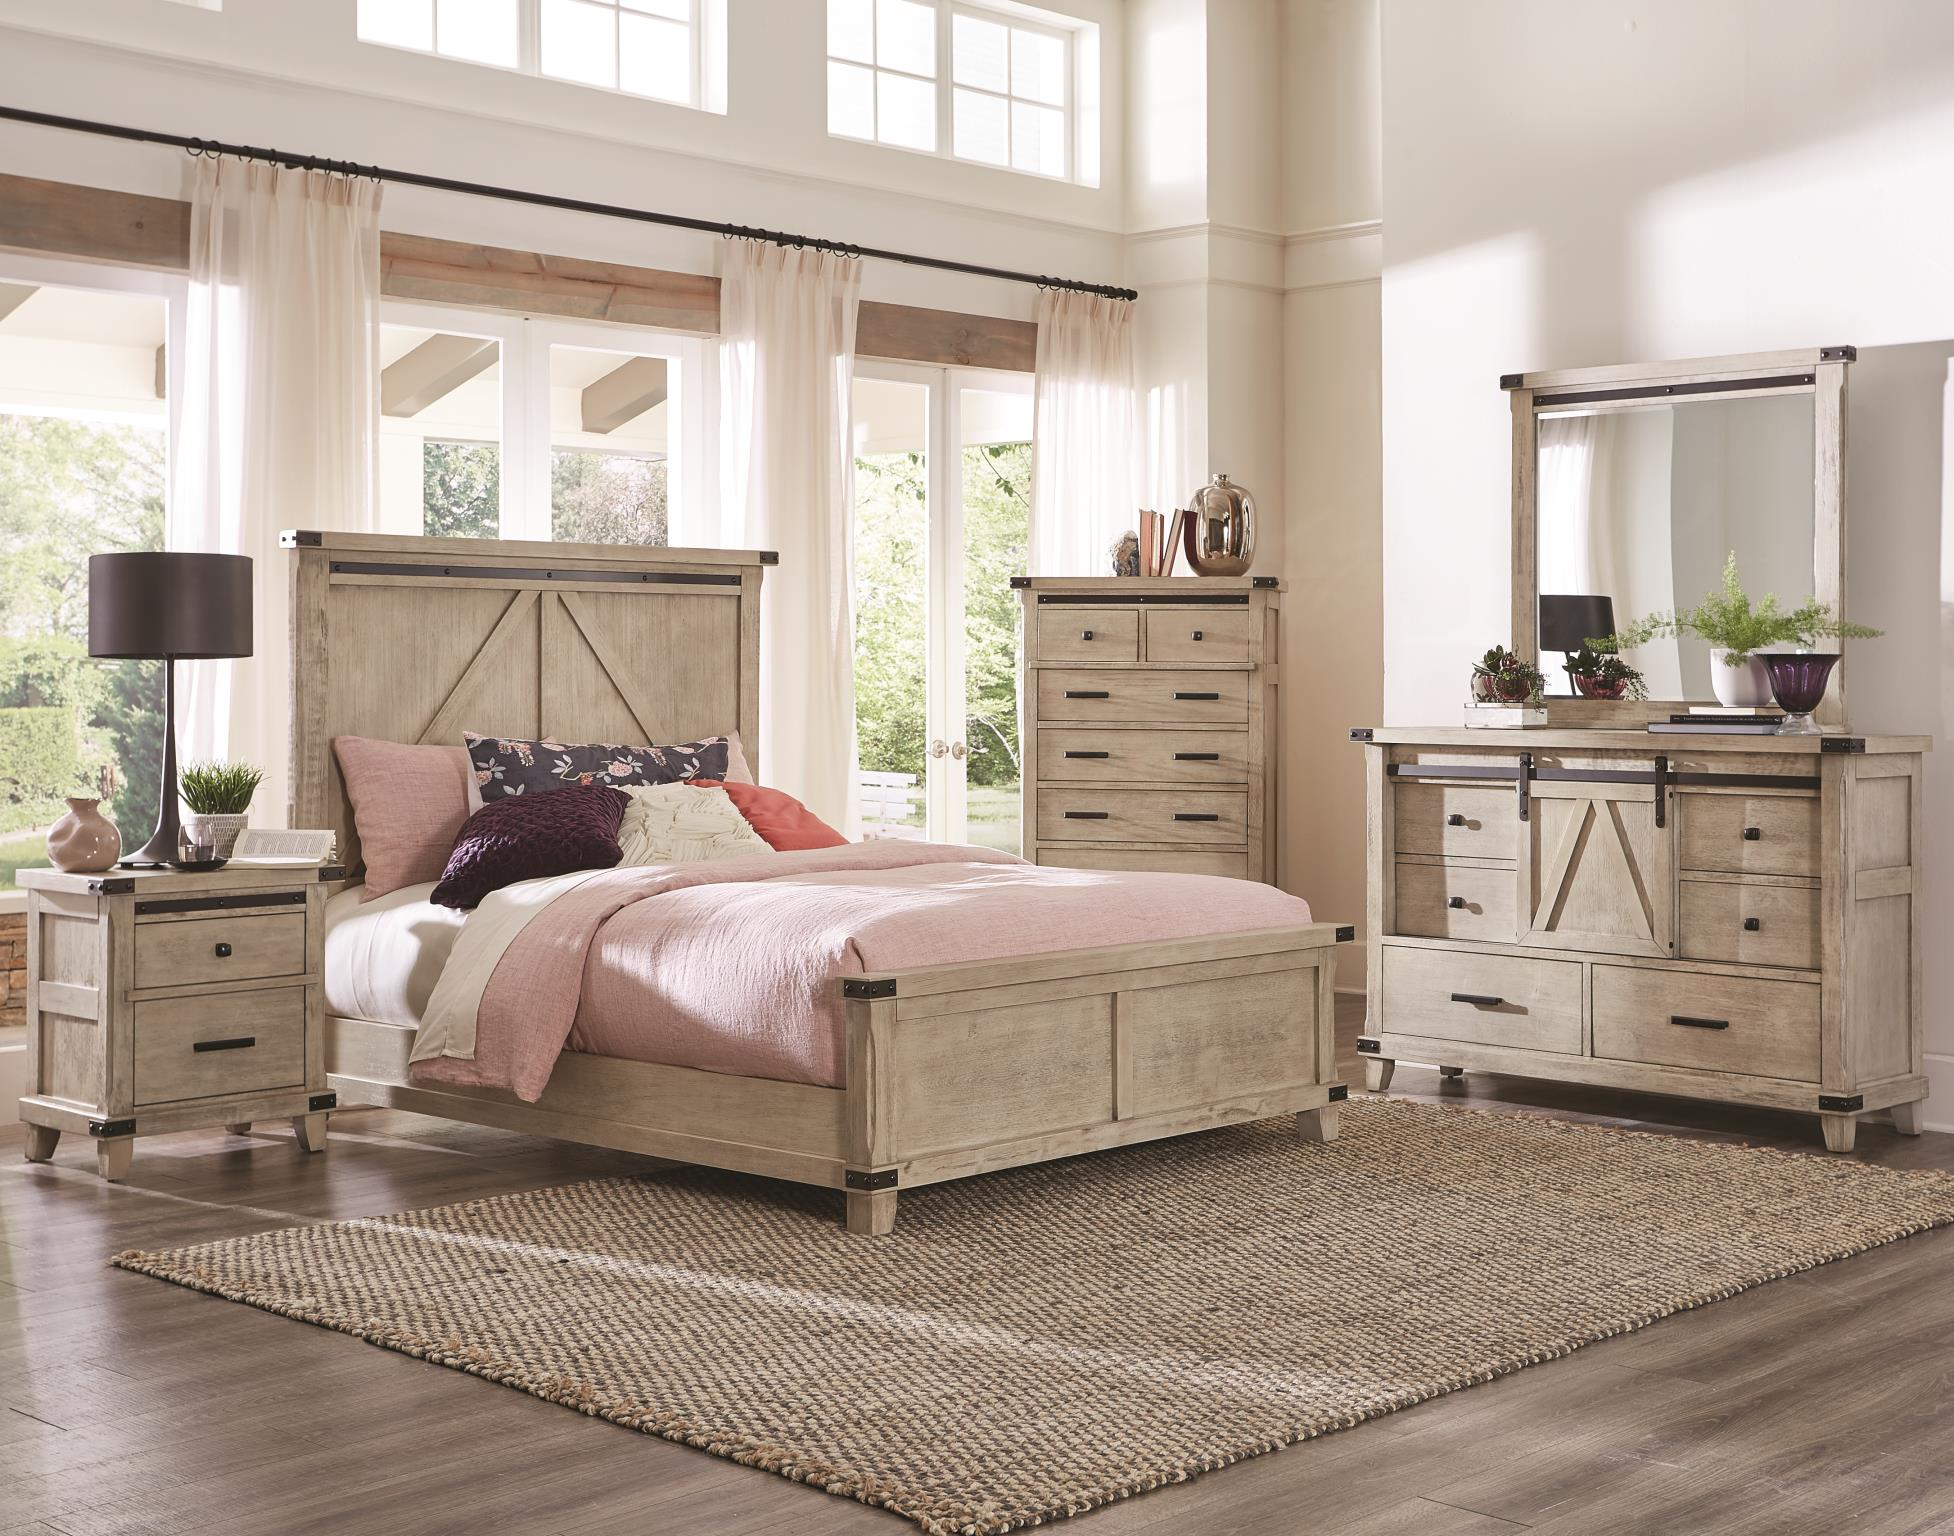 Kith 8 Rustic Cream Bedroom Group